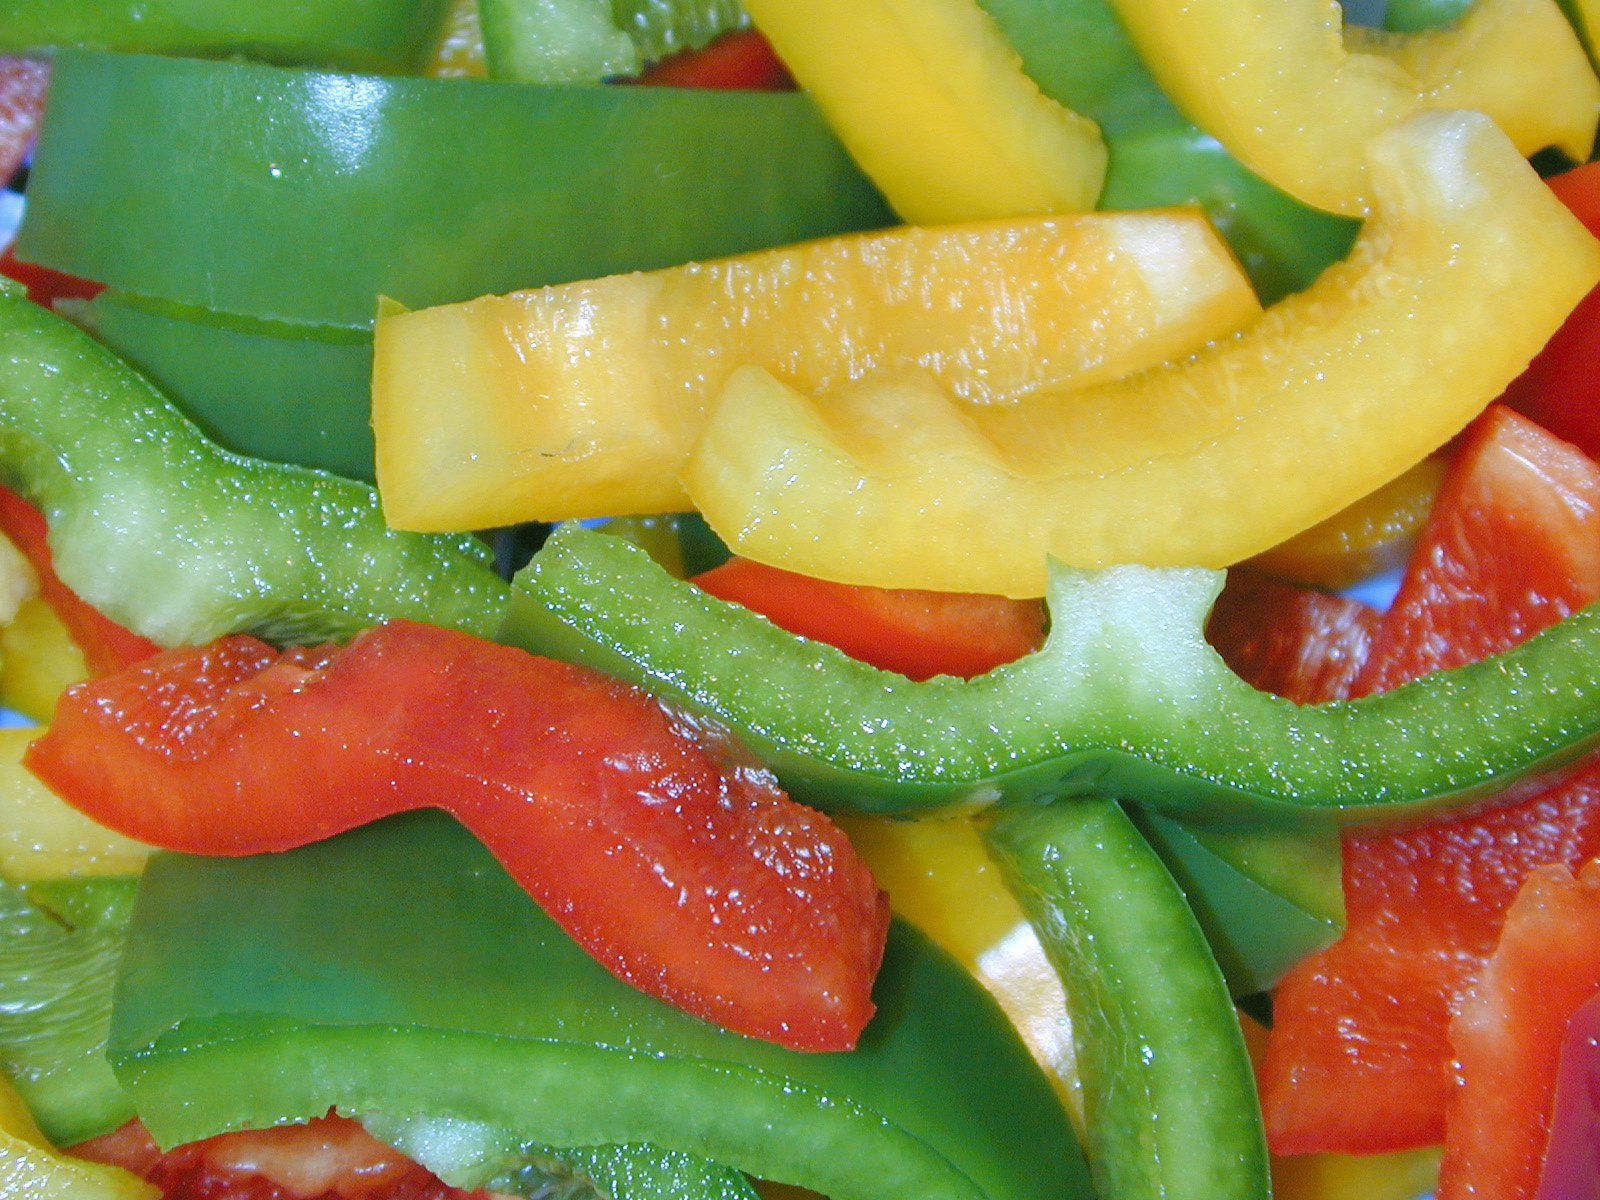 Sliced peppers photo